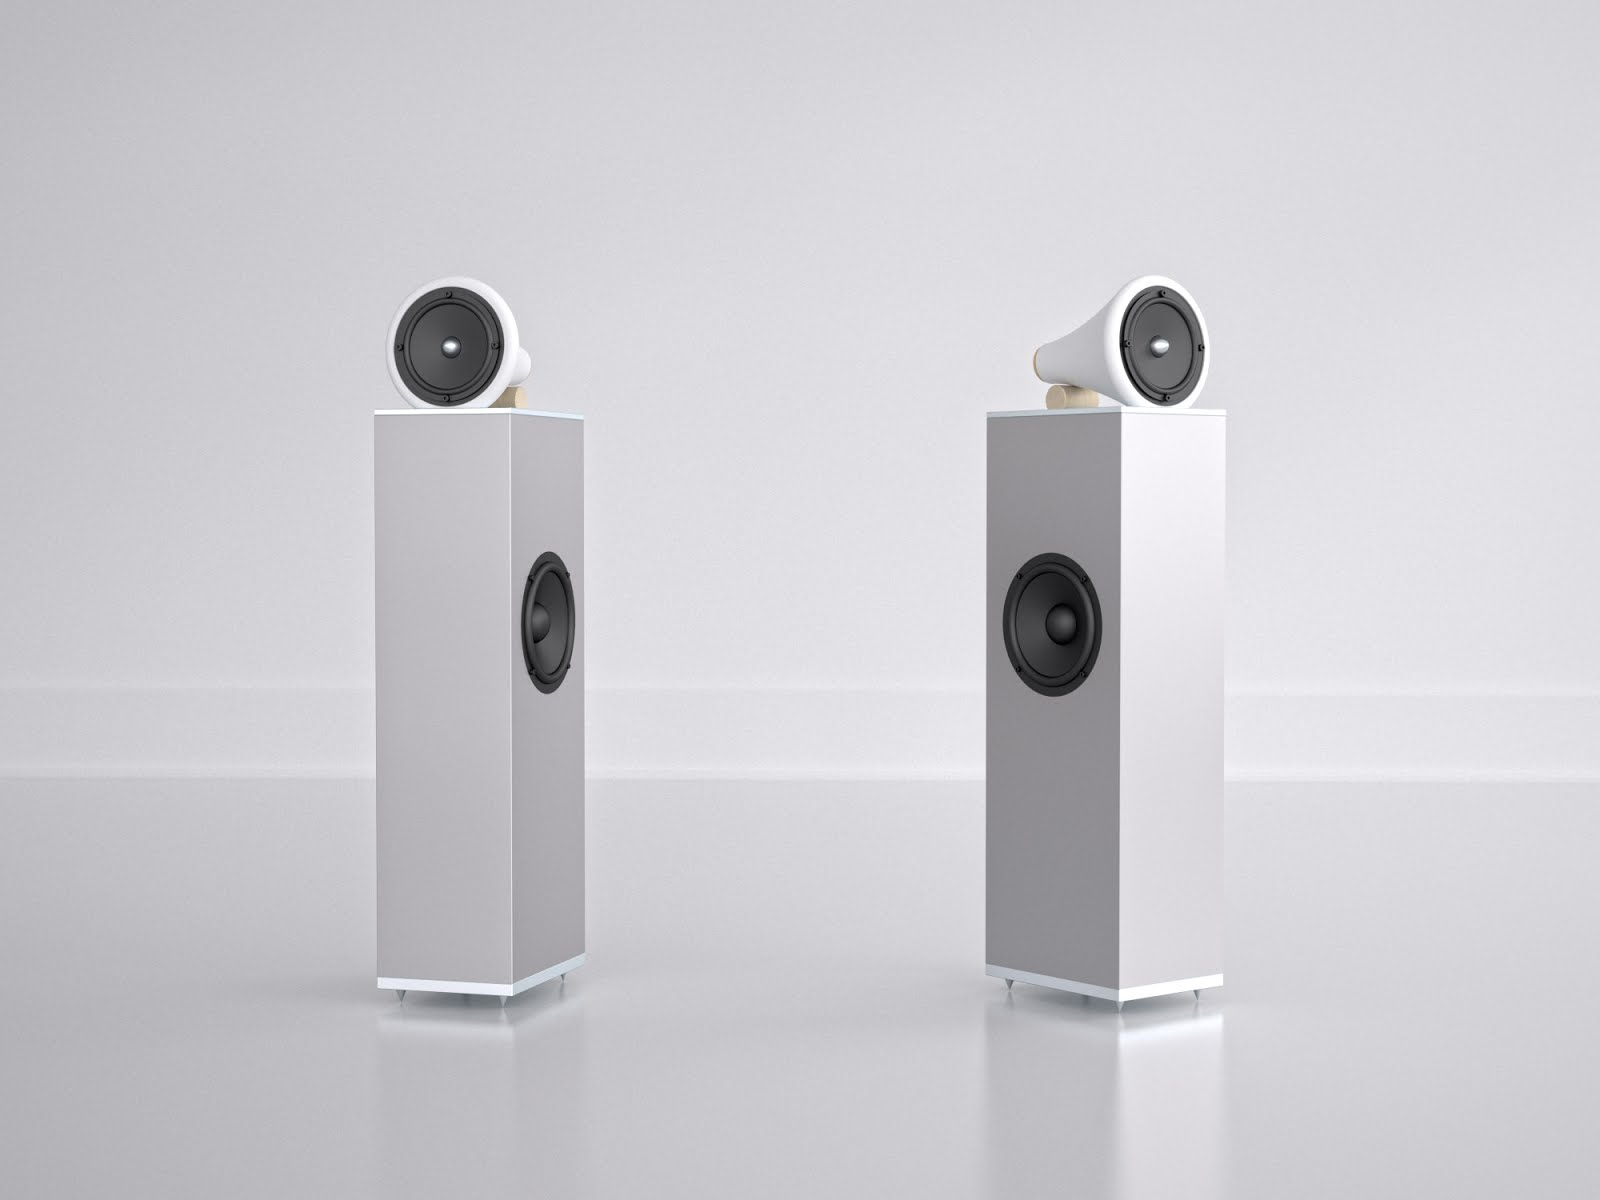 Mono and Stereo High-End Audio Magazine: Joey Roth Ceramic Towers